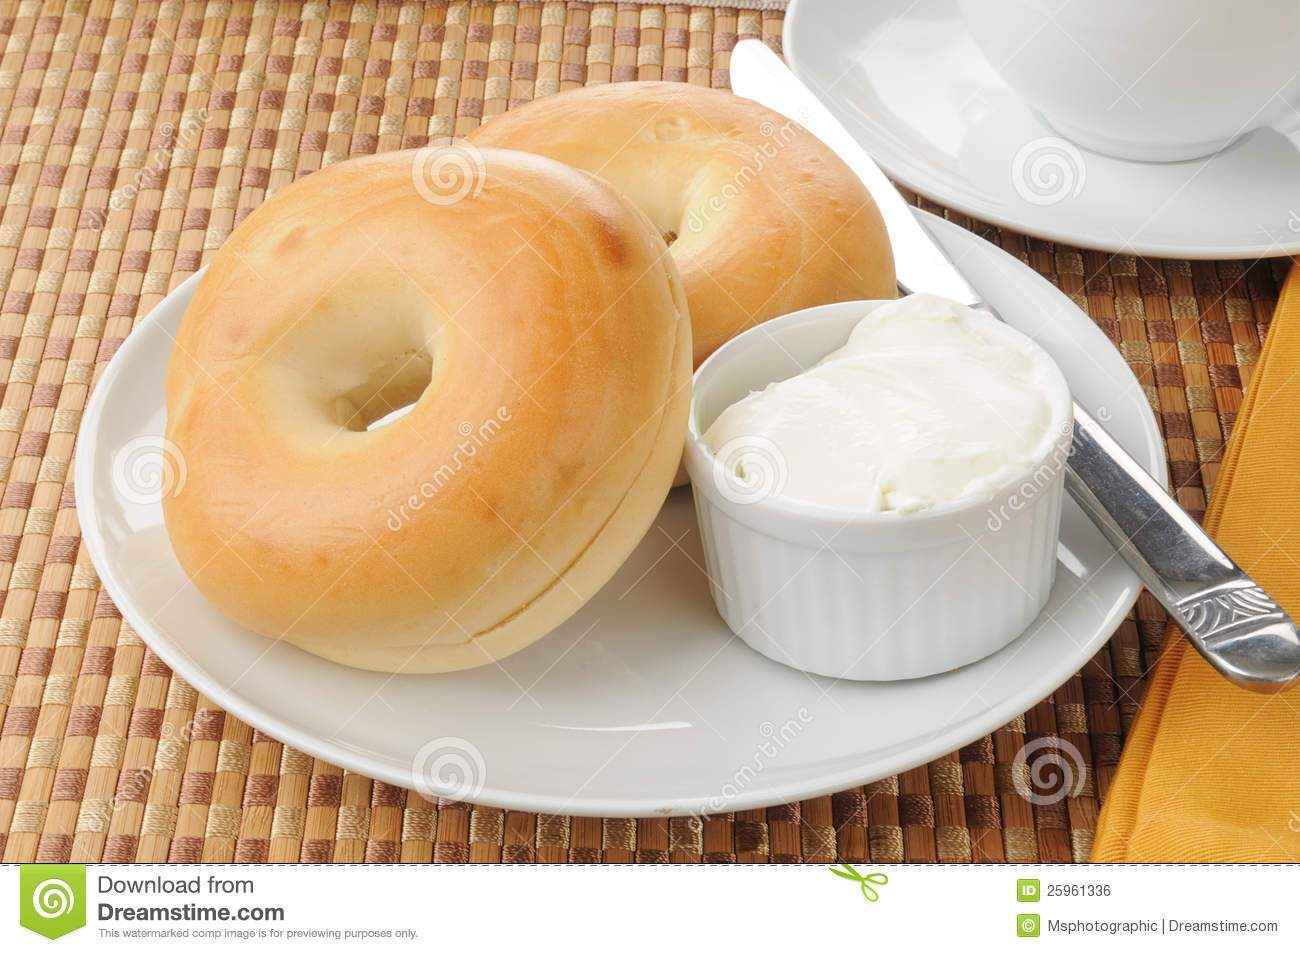 Bagel with cream cheese clipart clip art royalty free stock Bagel and cream cheese clipart 4 » Clipart Portal clip art royalty free stock